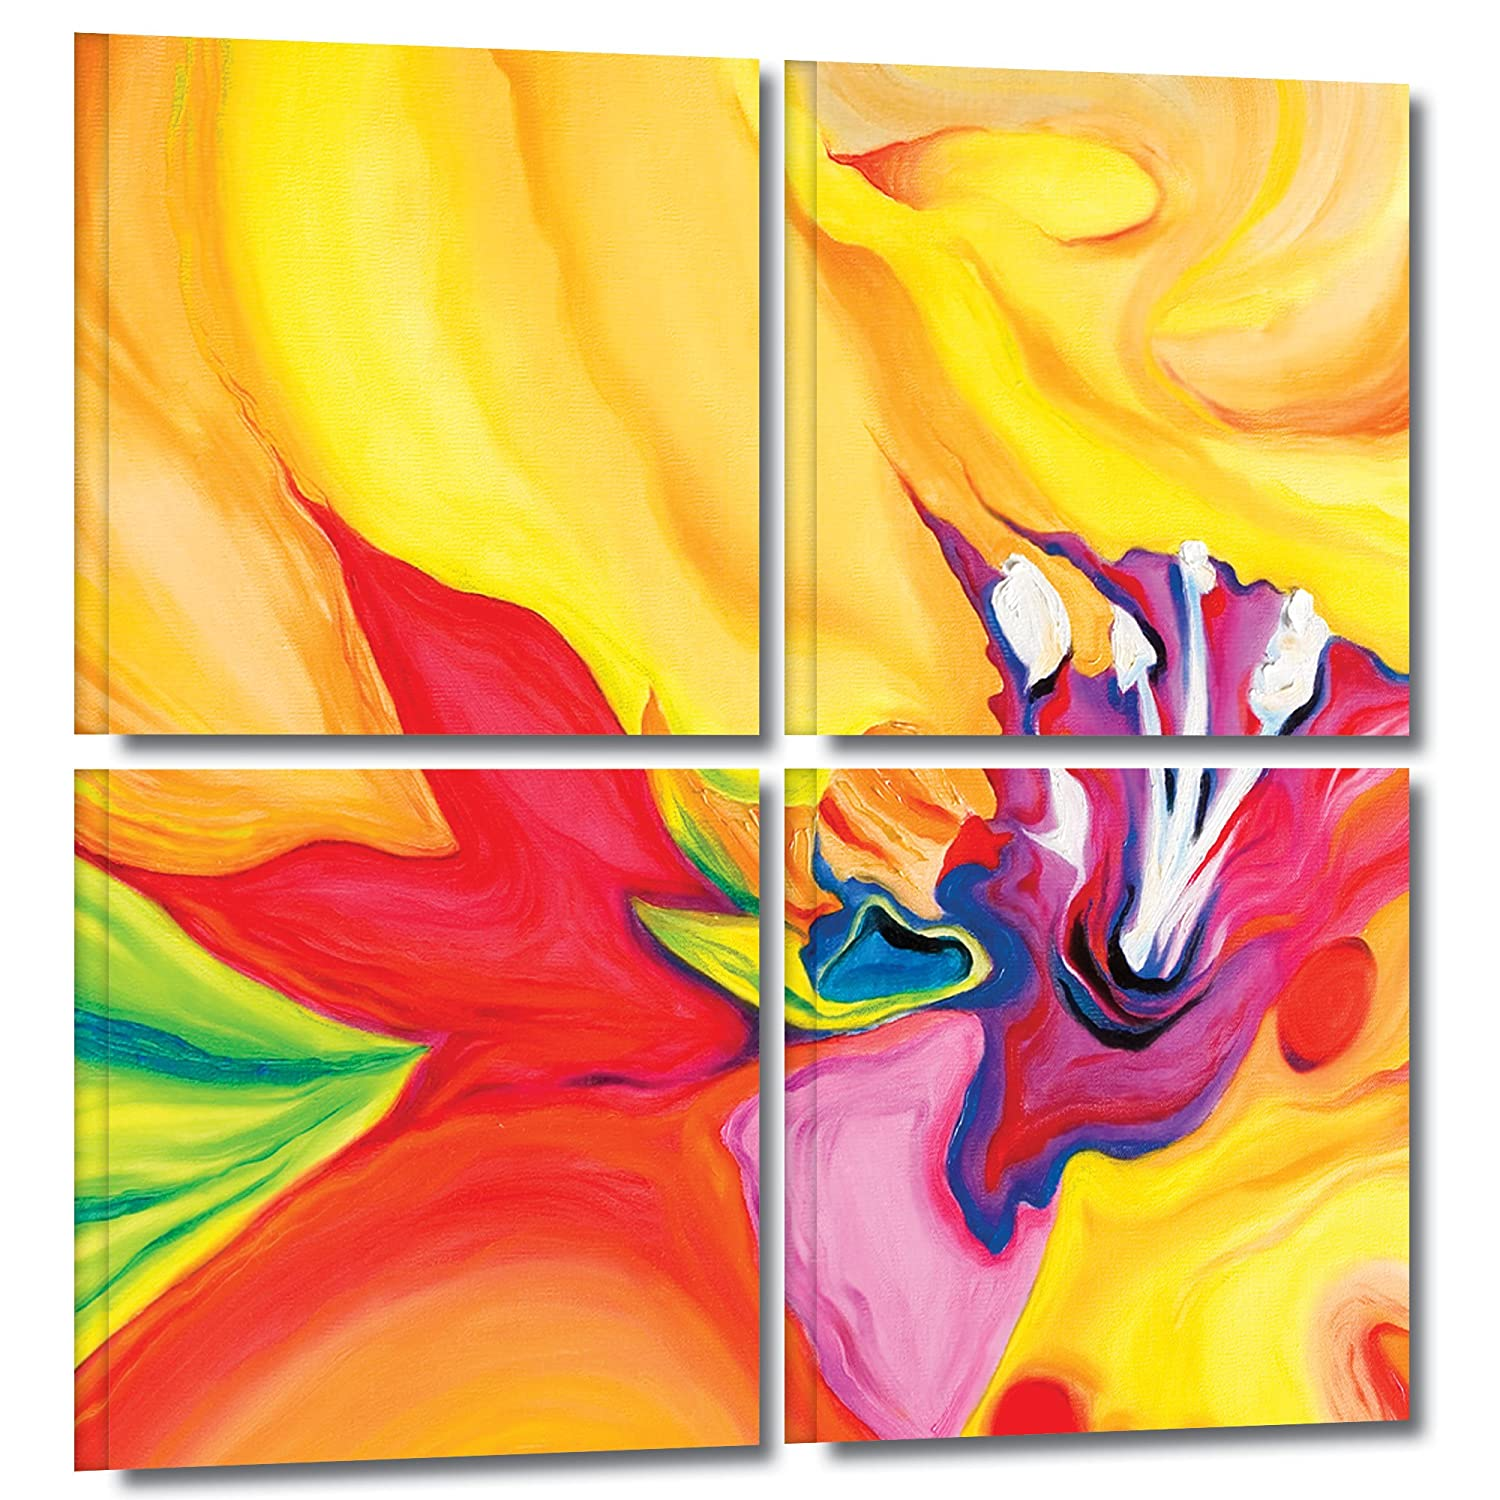 Art Wall 4-Piece Susi Franco 'Secret Life of Lily' Gallery Wrapped Canvas, 36 by 36-Inch